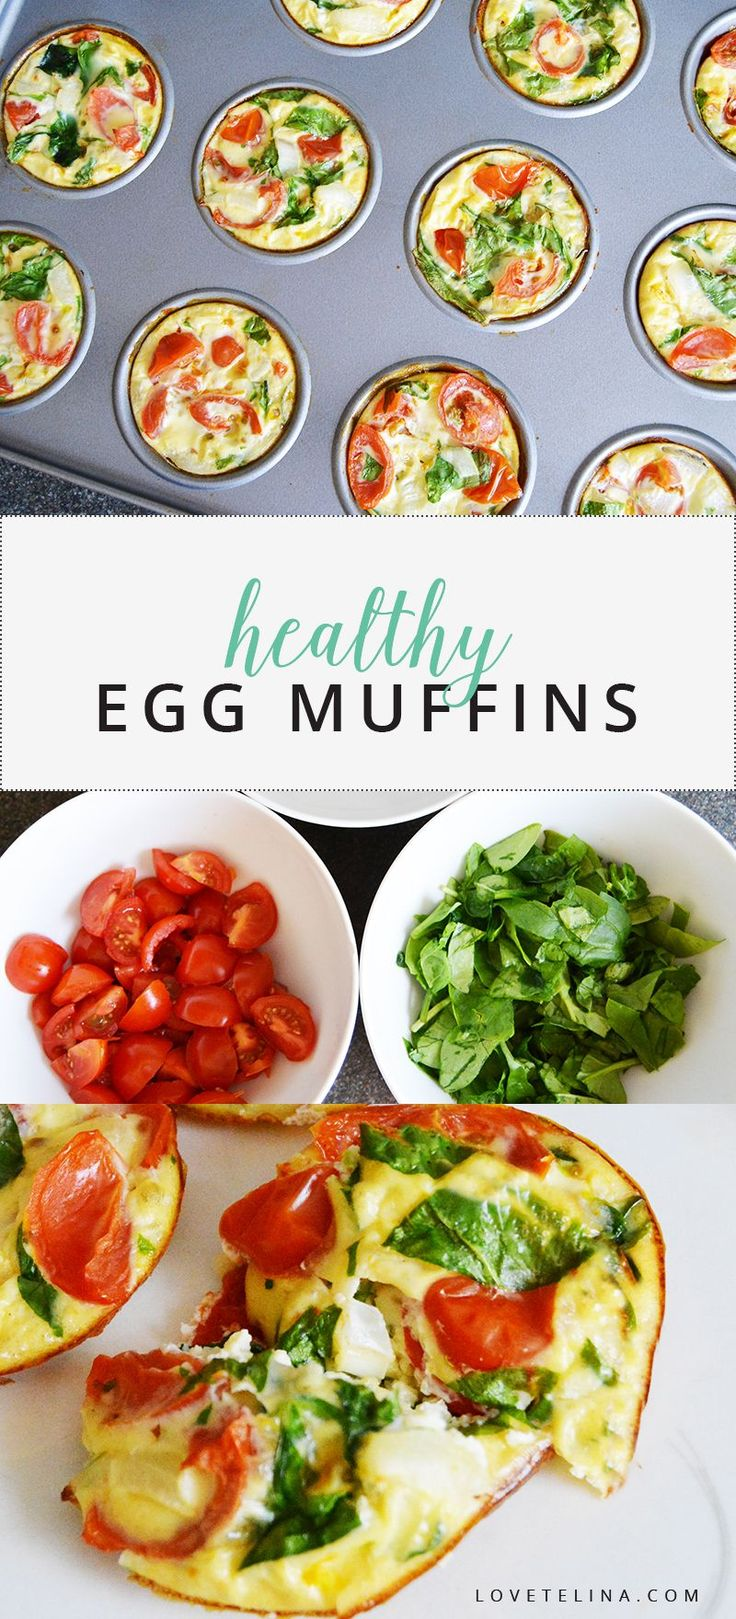 Breakfast is the most important meal of the day, so fueling up with something healthy and nutritious is ideal. Today, I'm sharing a breakfast recipe that is just that. These healthy egg muffins are loaded with veggies, high in protein and easy to make. Oh, and they're tasty too!